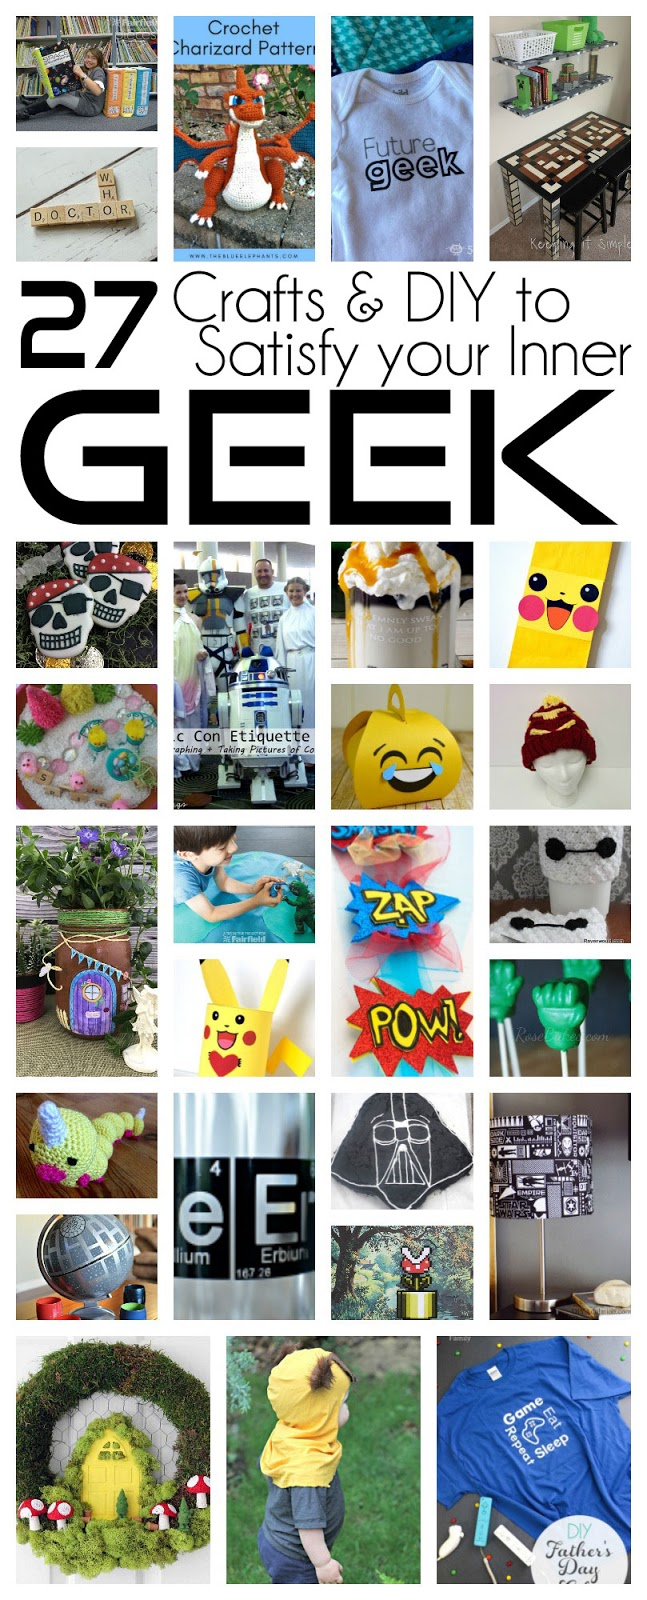 So many great Geek crafts and DIY tutorials